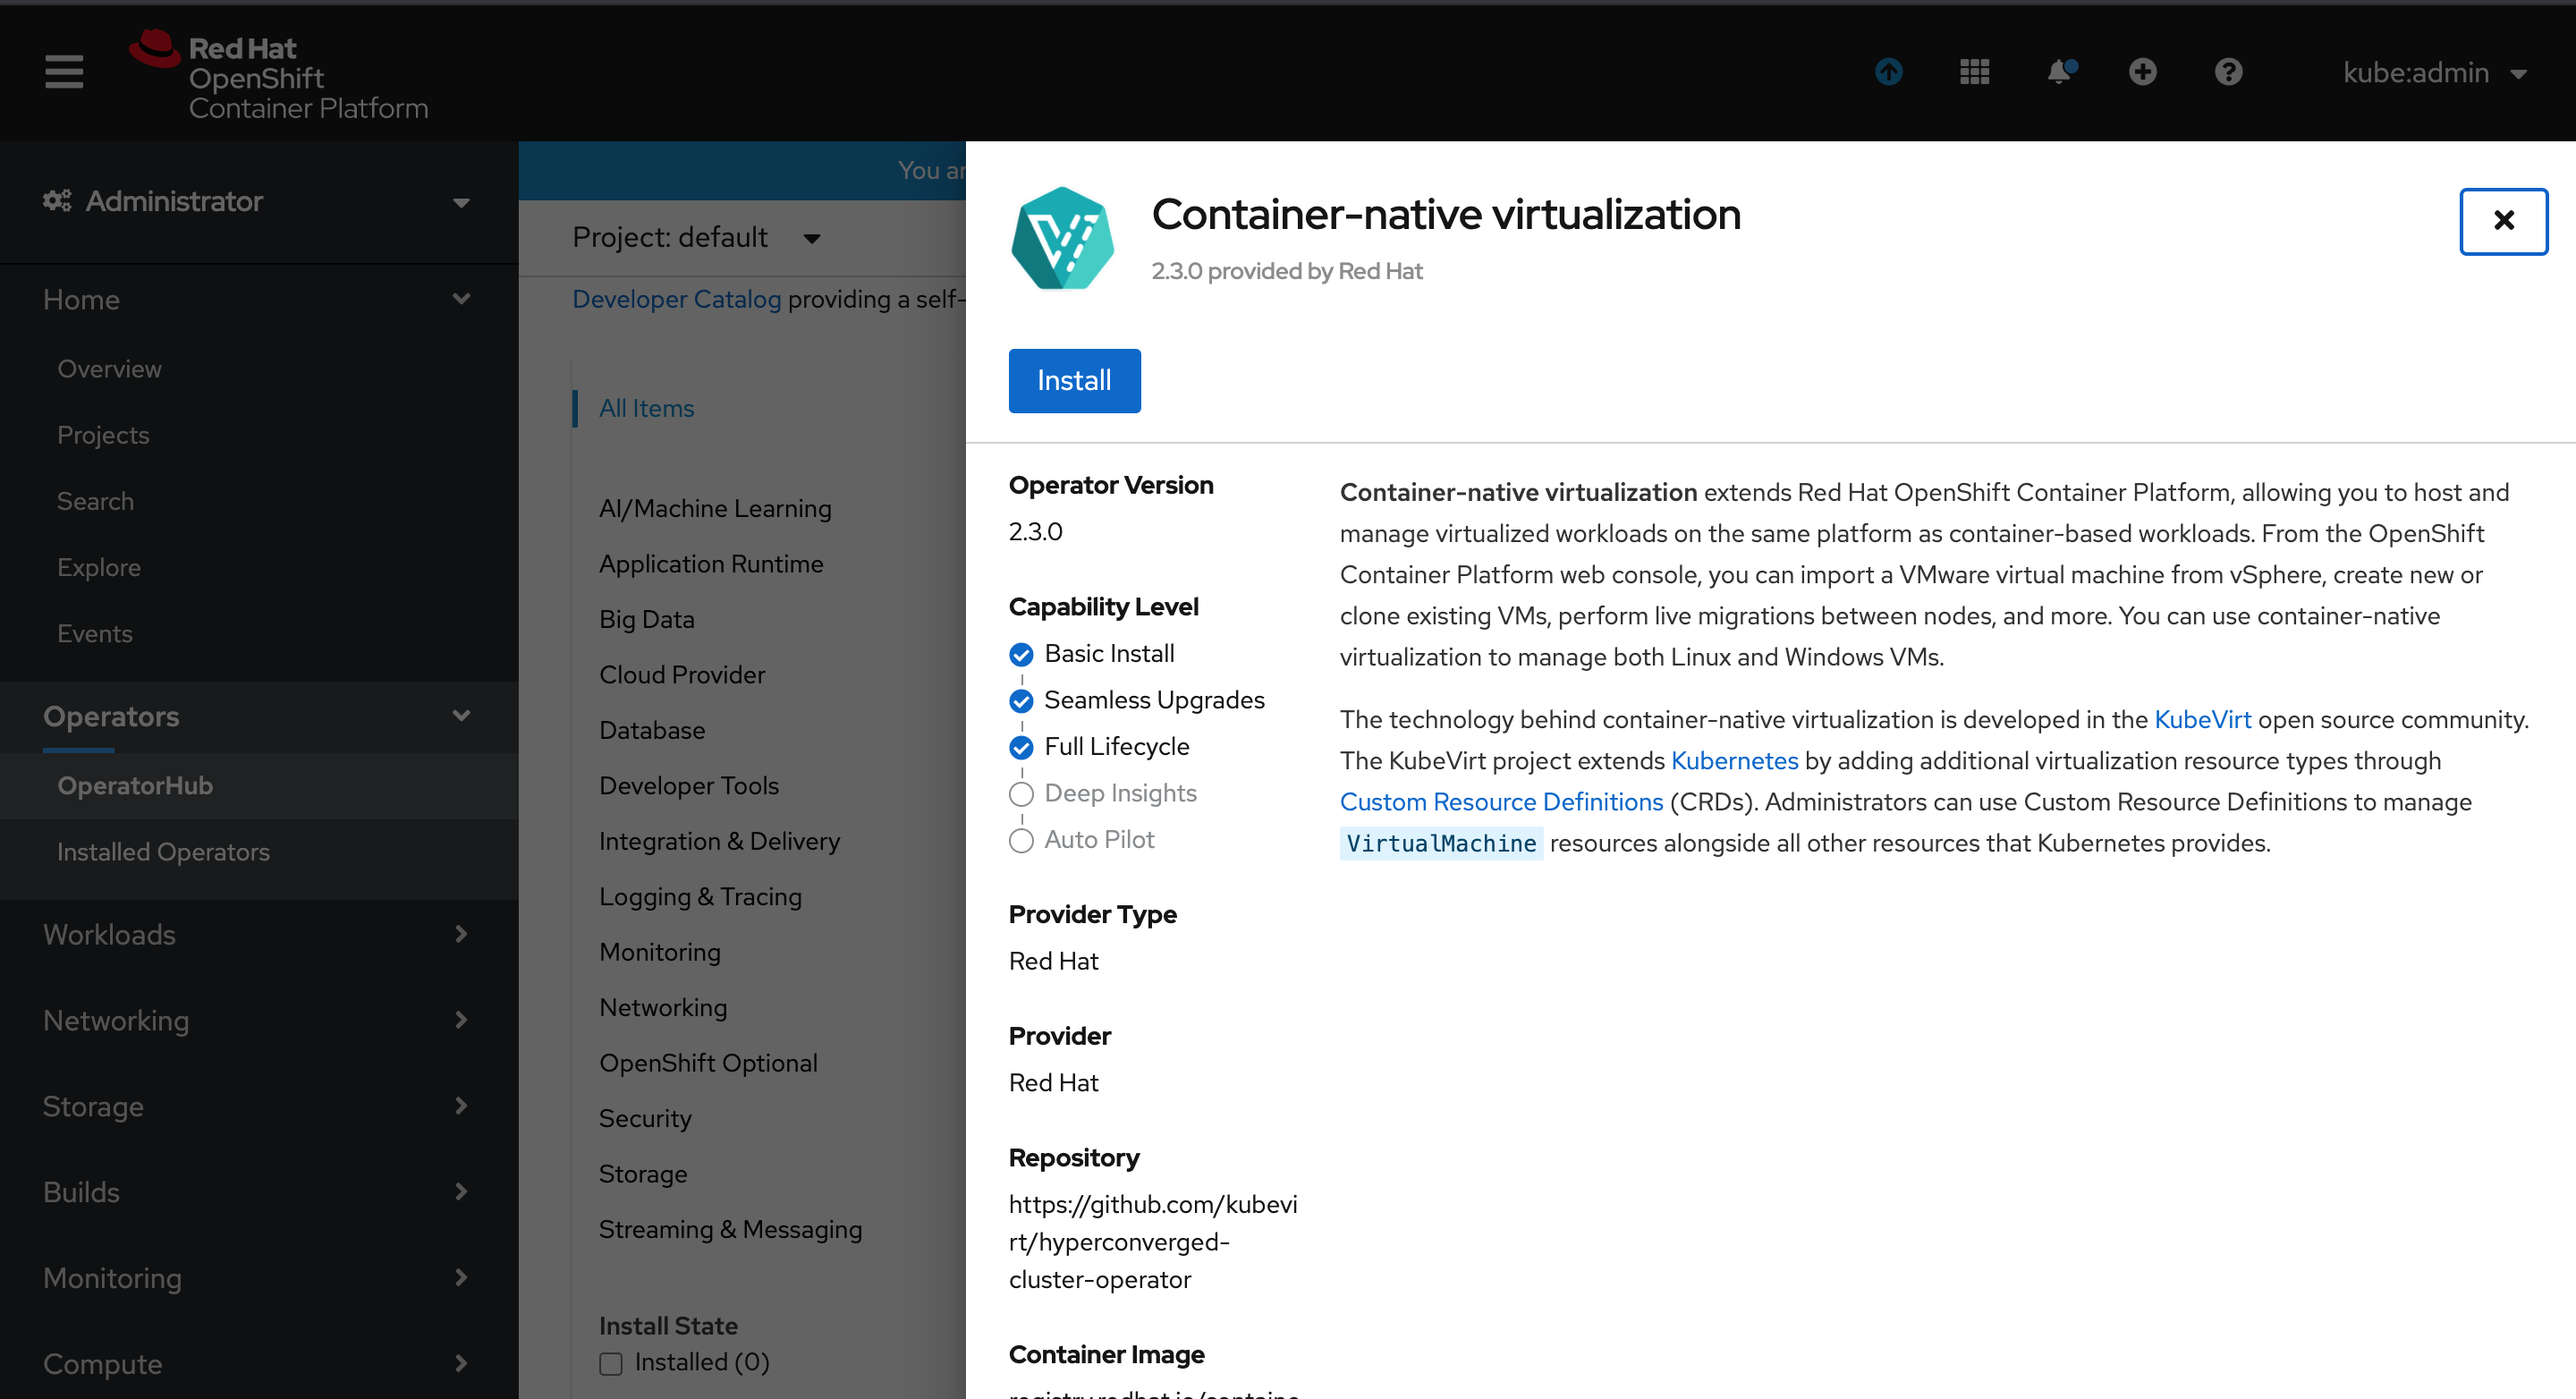 Enable OpenShift Virtualization on Red Hat OpenShift